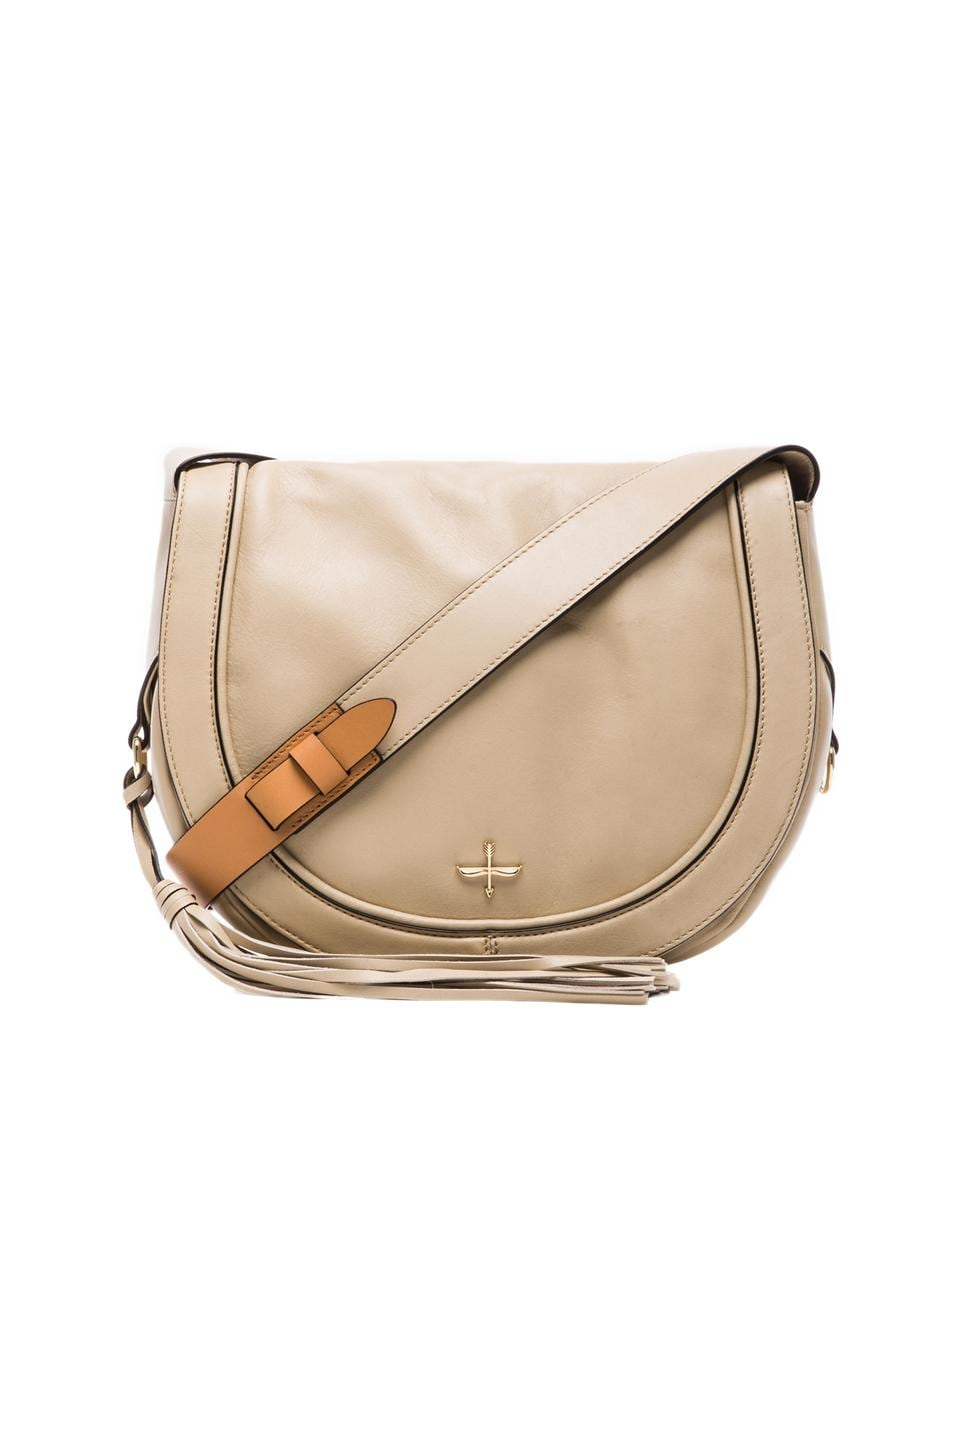 Pour La Victoire Nina Saddle Bag in Bone